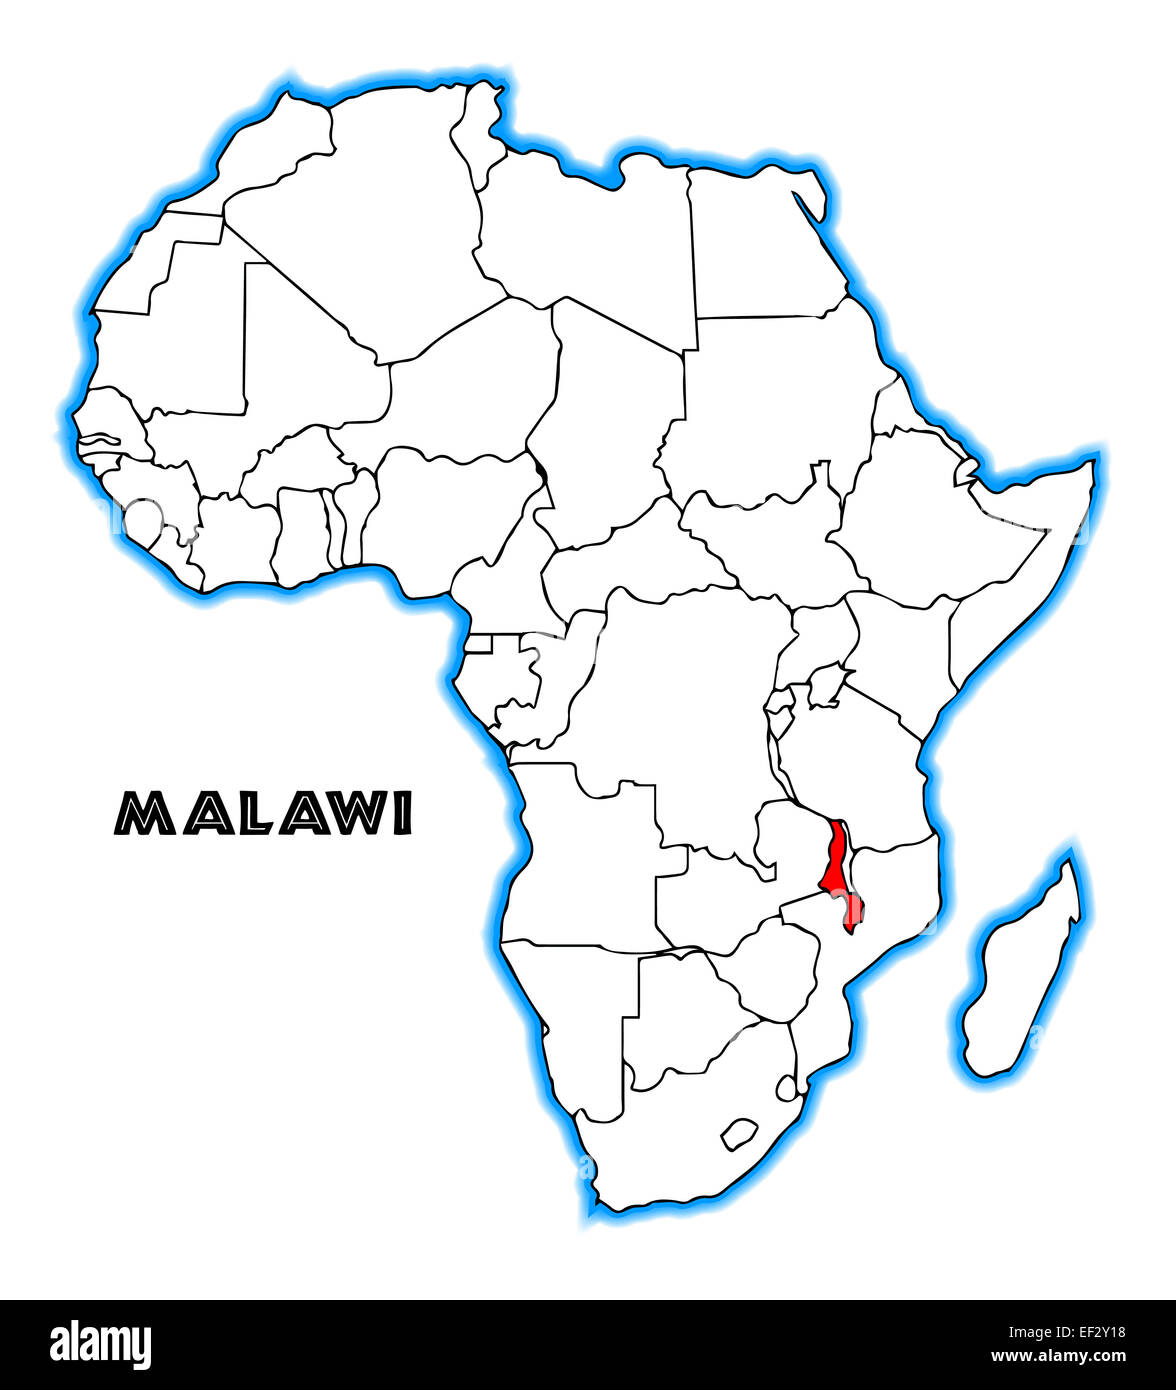 Malawi On Africa Map.Malawi Outline Inset Into A Map Of Africa Over A White Background